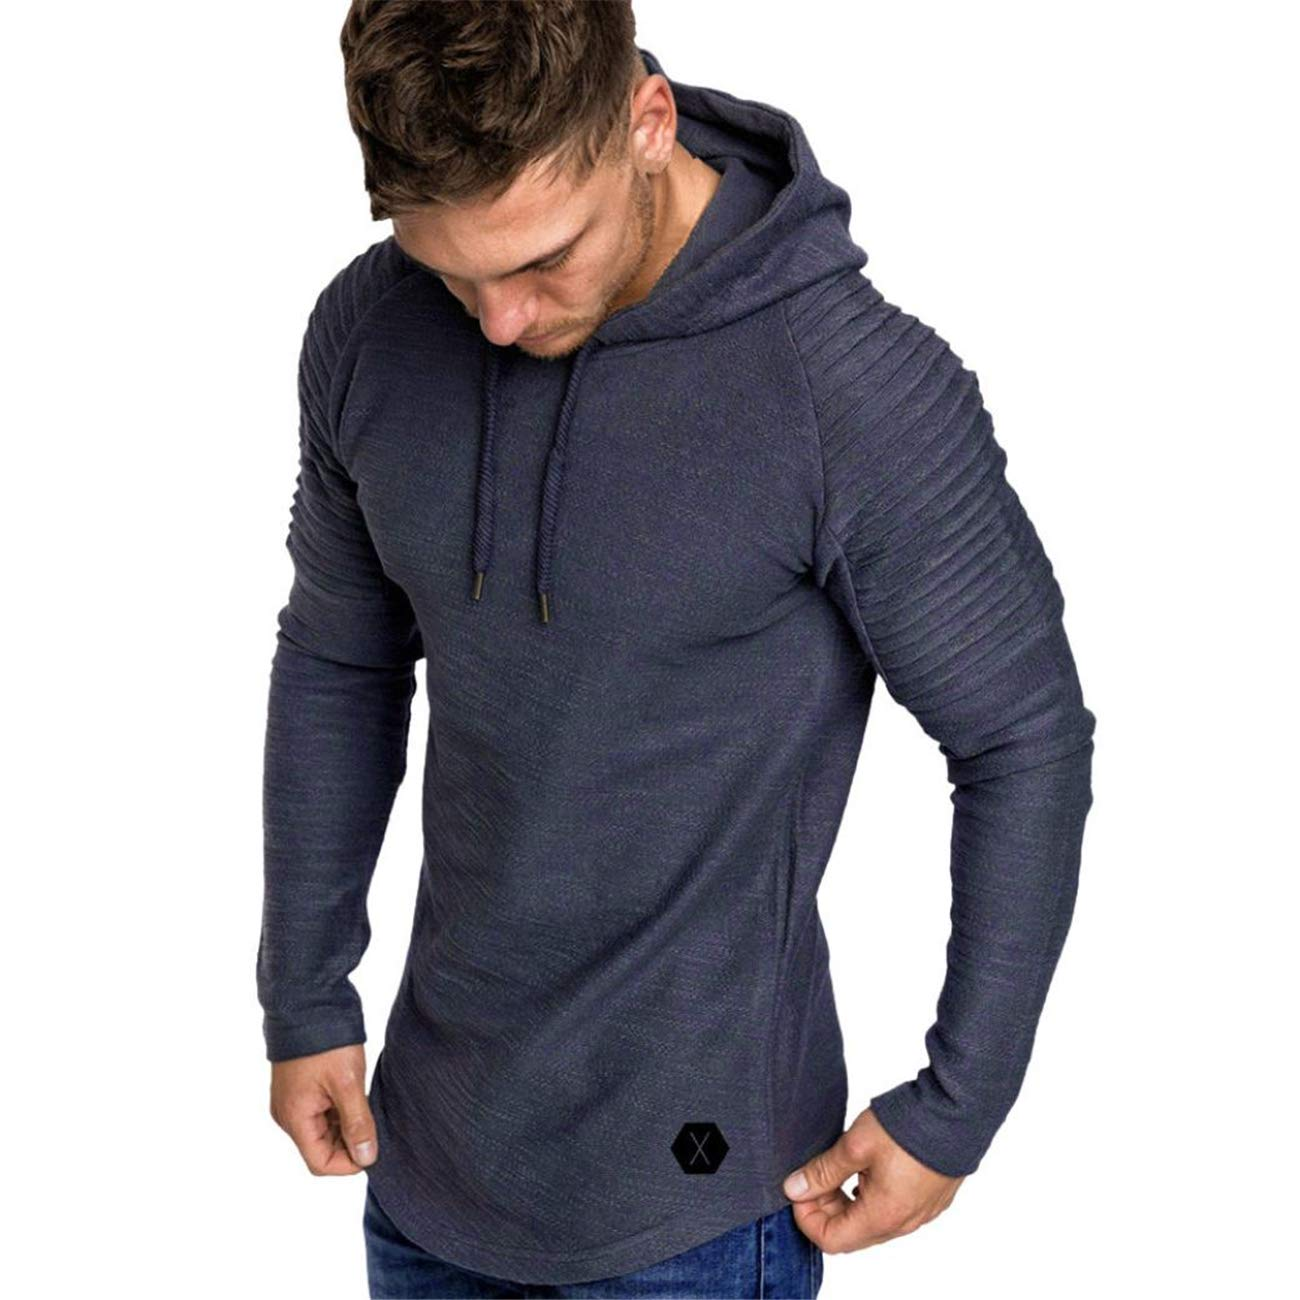 Rosennie Fashion Mens Hoodie, Men Autumn Winter Fitness Long Sleeves Gyms Vest Tees Slim Fit Hooded Waistcoats Casual Outerwear Pleats Raglan Coat